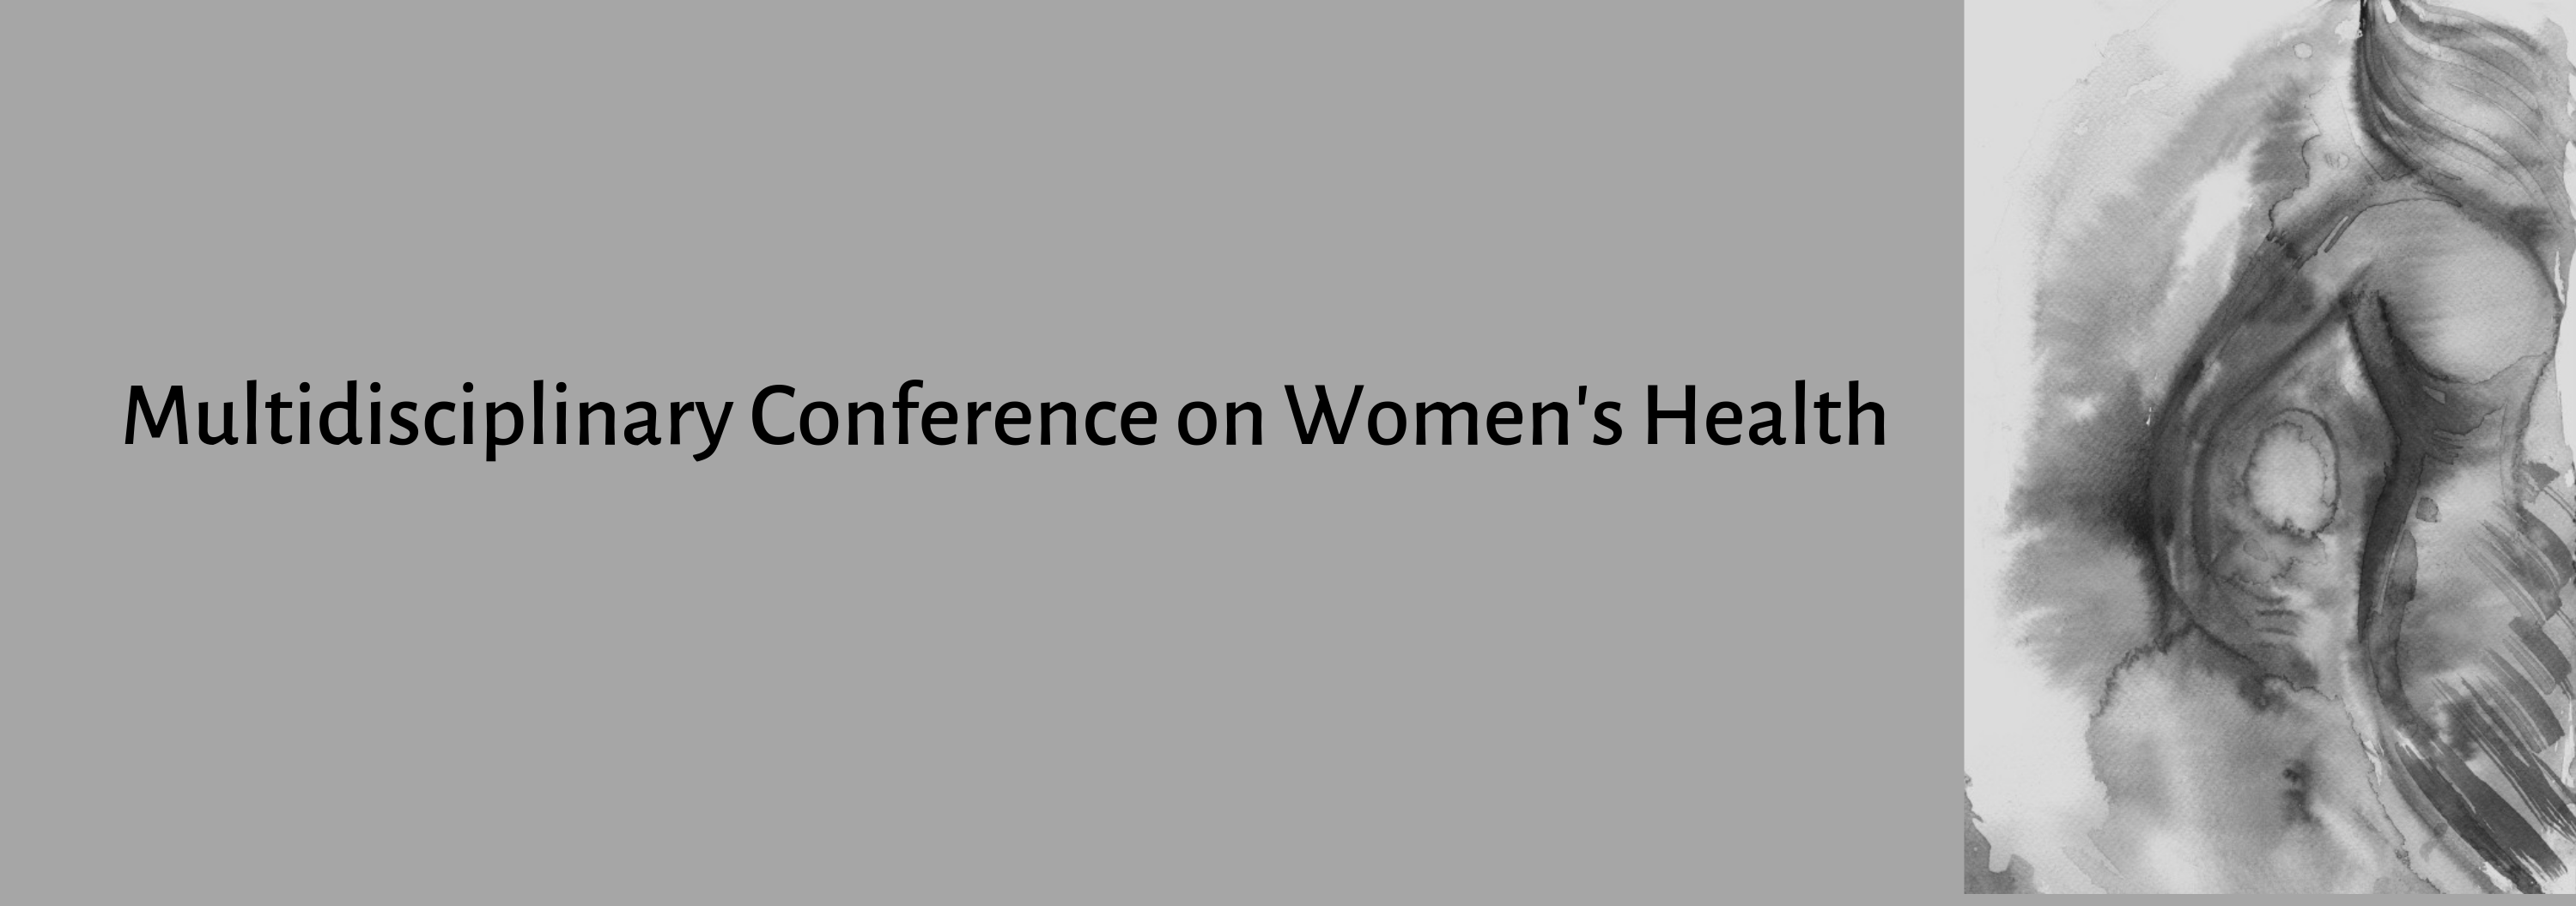 2019 Multidisciplinary Conference on Women's Health Banner